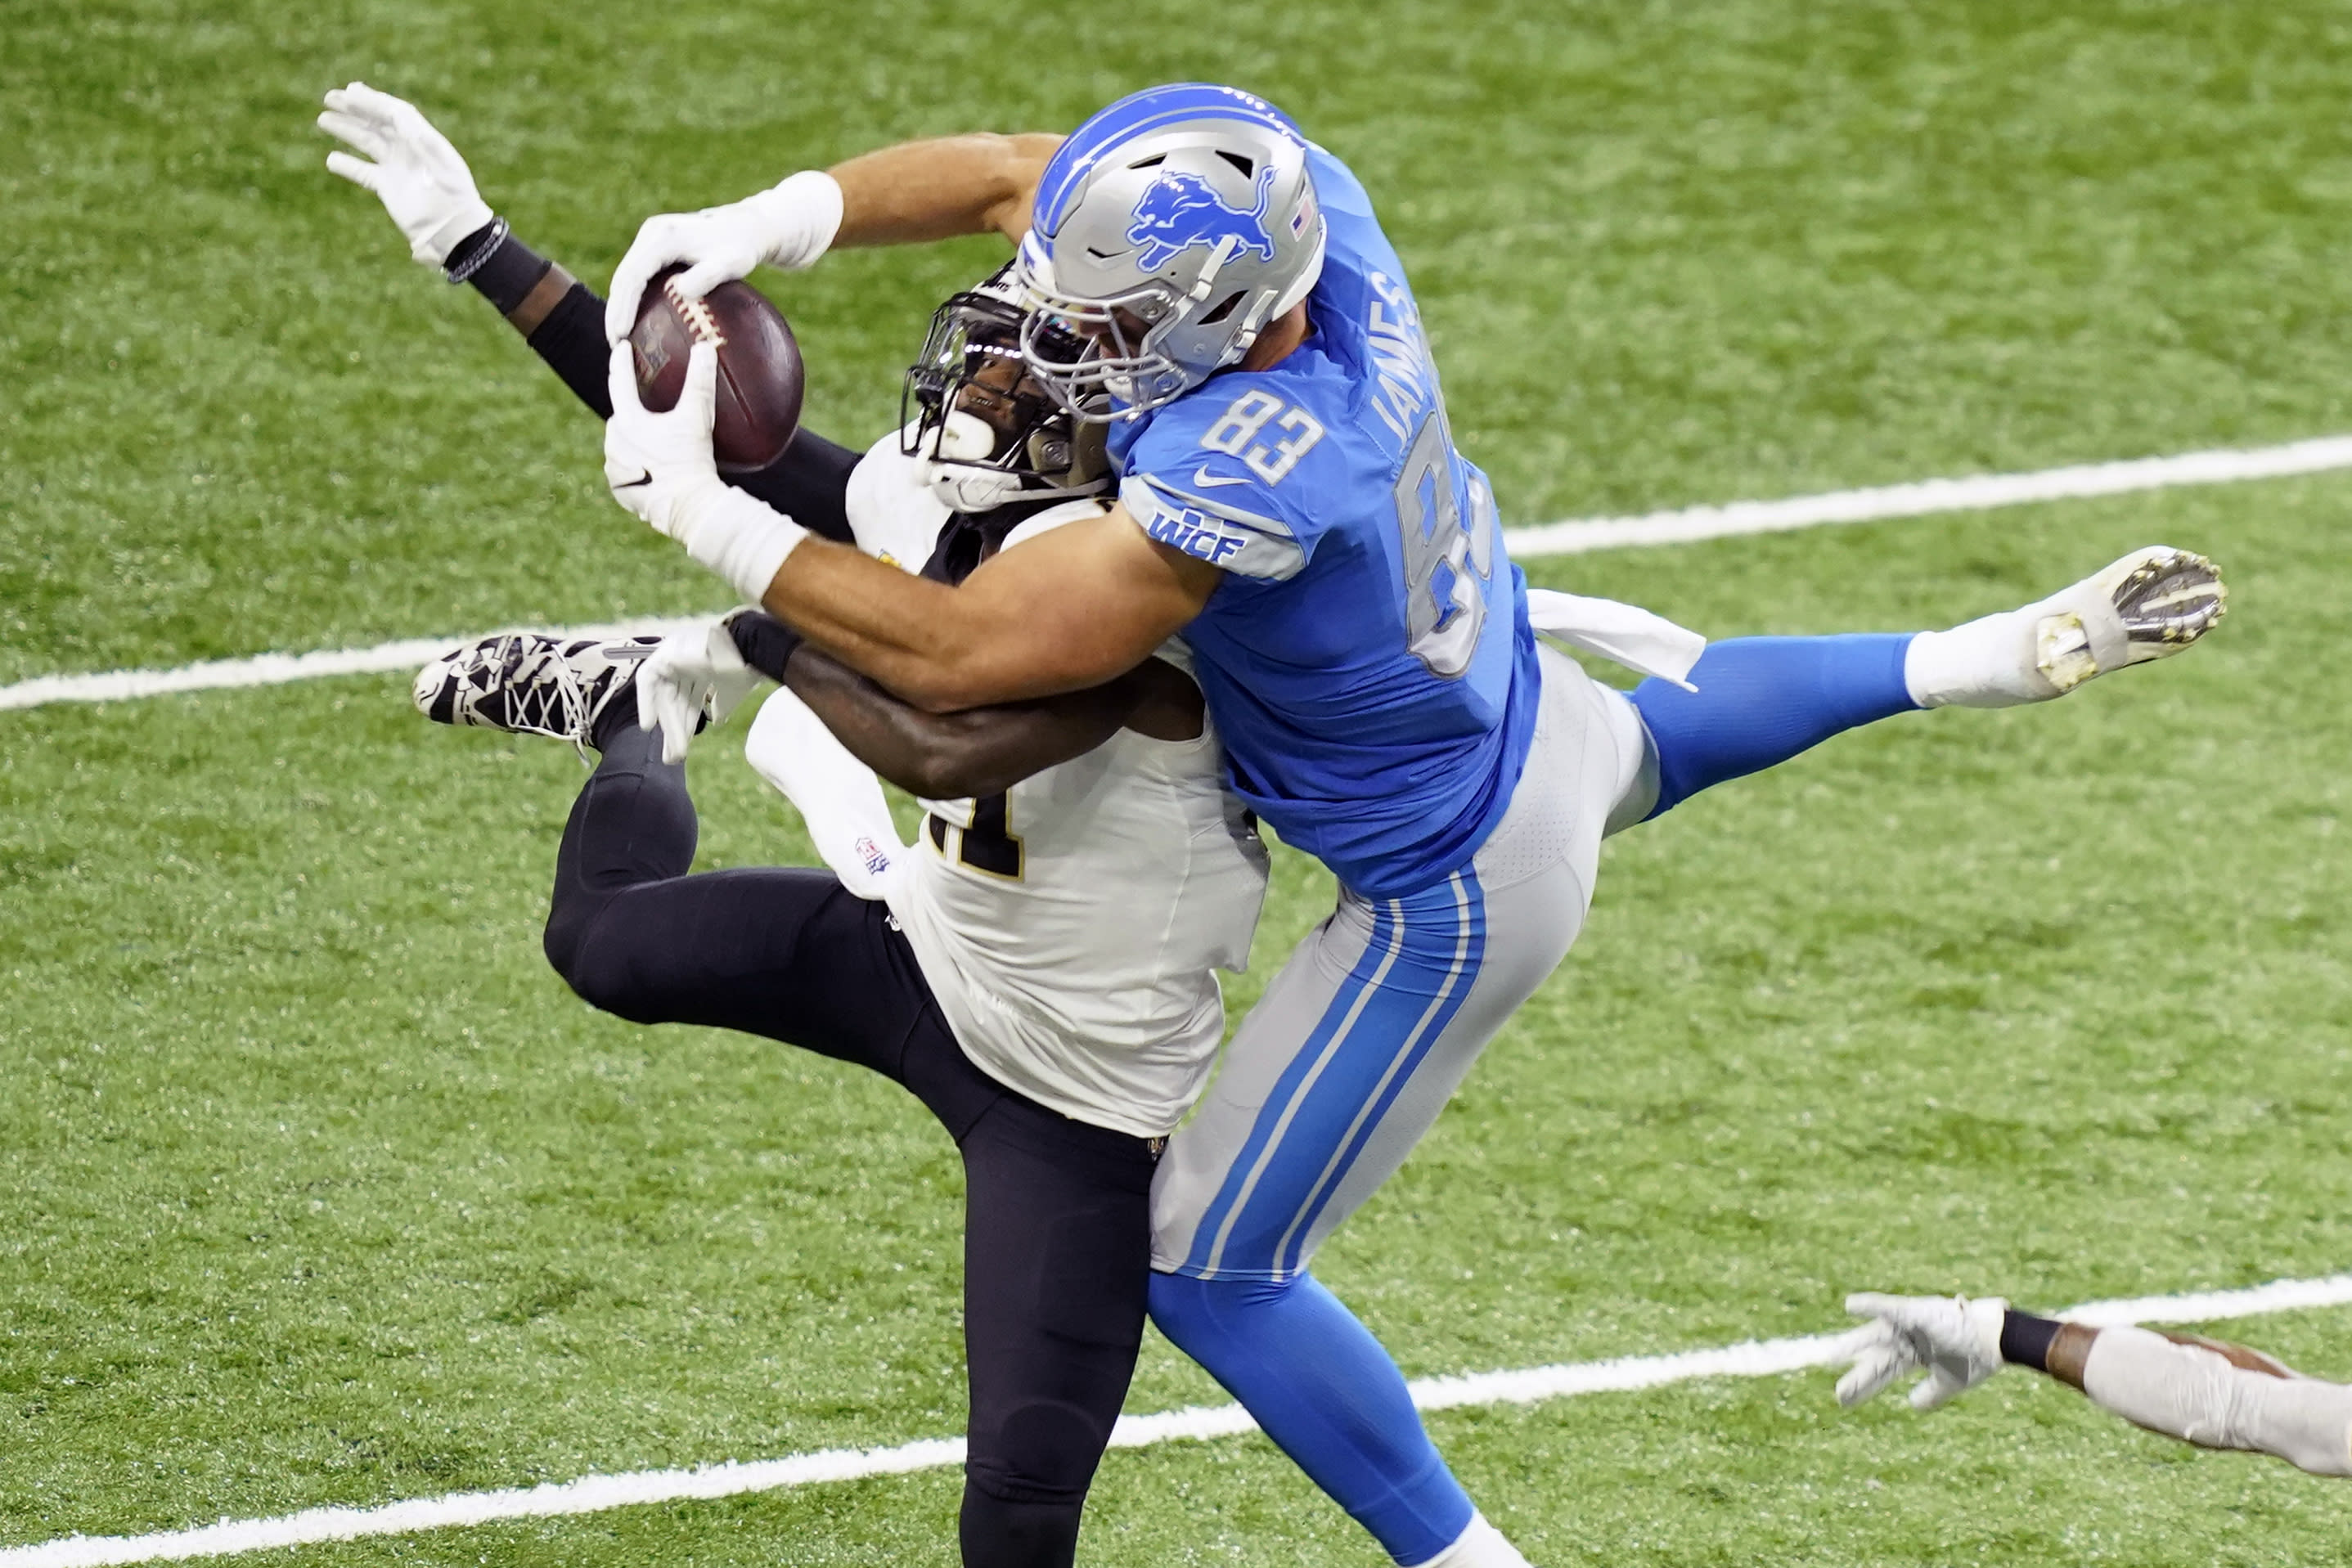 Detroit Lions tight end Jesse James (83), defended by New Orleans Saints strong safety Malcolm Jenkins (27) makes a 31-yard reception during the first half of an NFL football game, Sunday, Oct. 4, 2020, in Detroit. (AP Photo/Carlos Osorio)